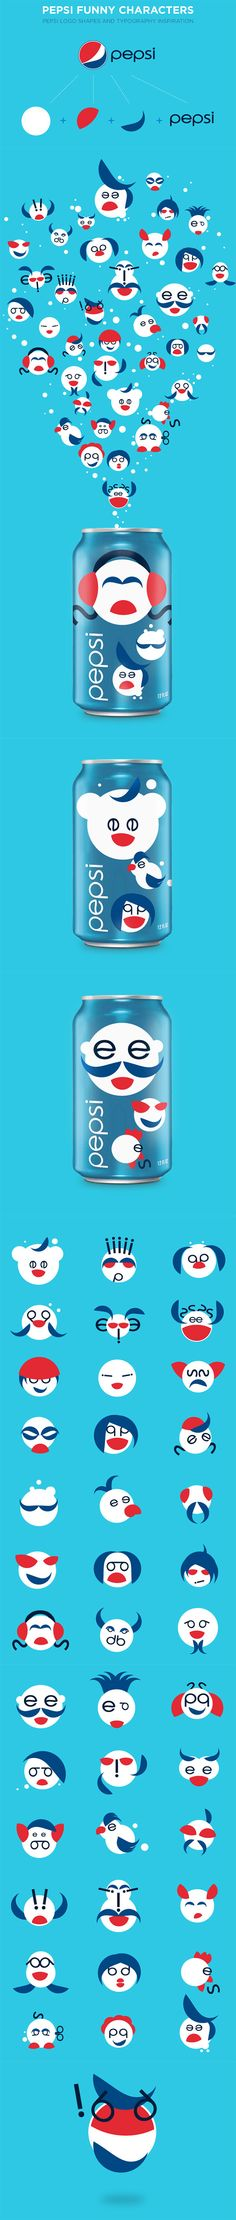 IInspired by the pepsi logo shape & colors, Hugo Silva, a graphic designer and illustrator from Lisbon (Portugal), decided to create diversified and funny characters out of it. It's an creative, alternative way to represent the well known brand -CB